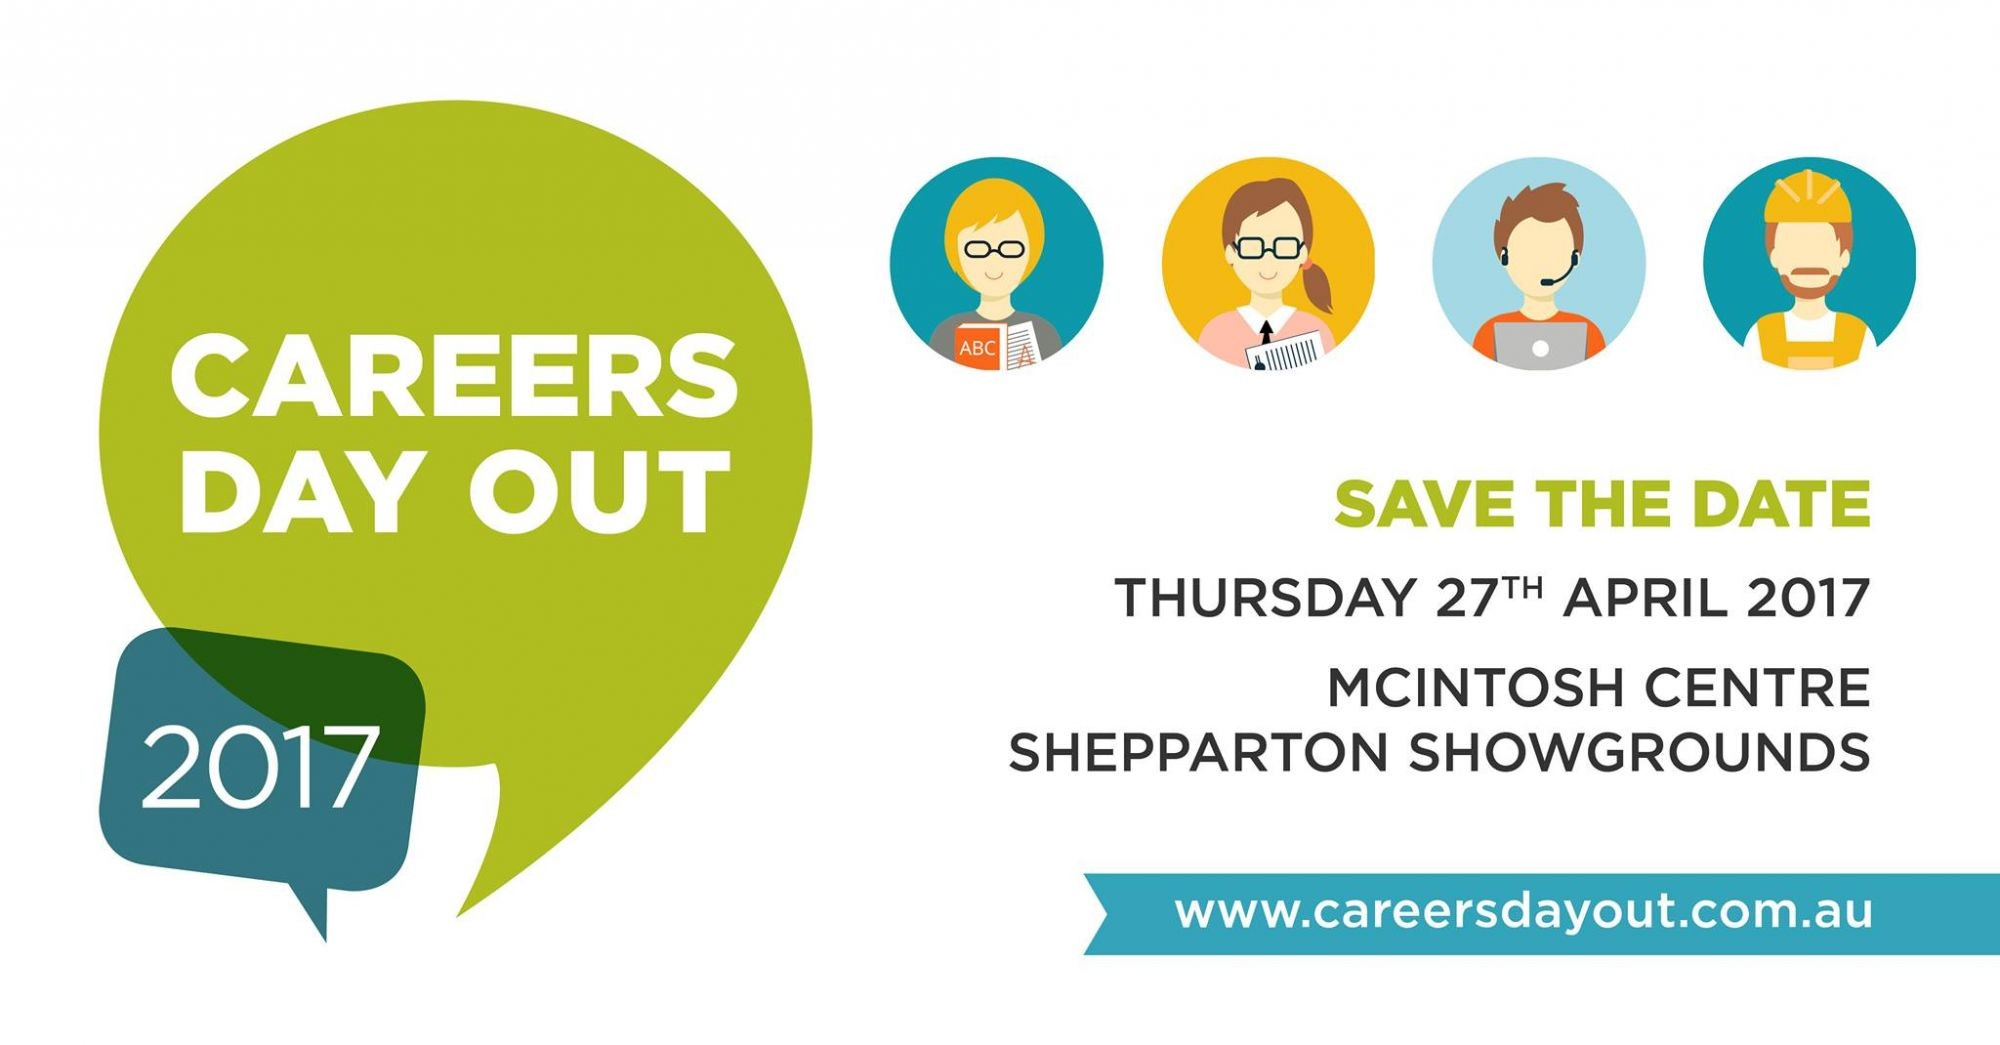 discover job ideas at careers day out greater shepparton city the 2017 careers day out provides regional secondary students and job seekers a one stop shop of ideas and opportunities over 70 exhibitors will be on